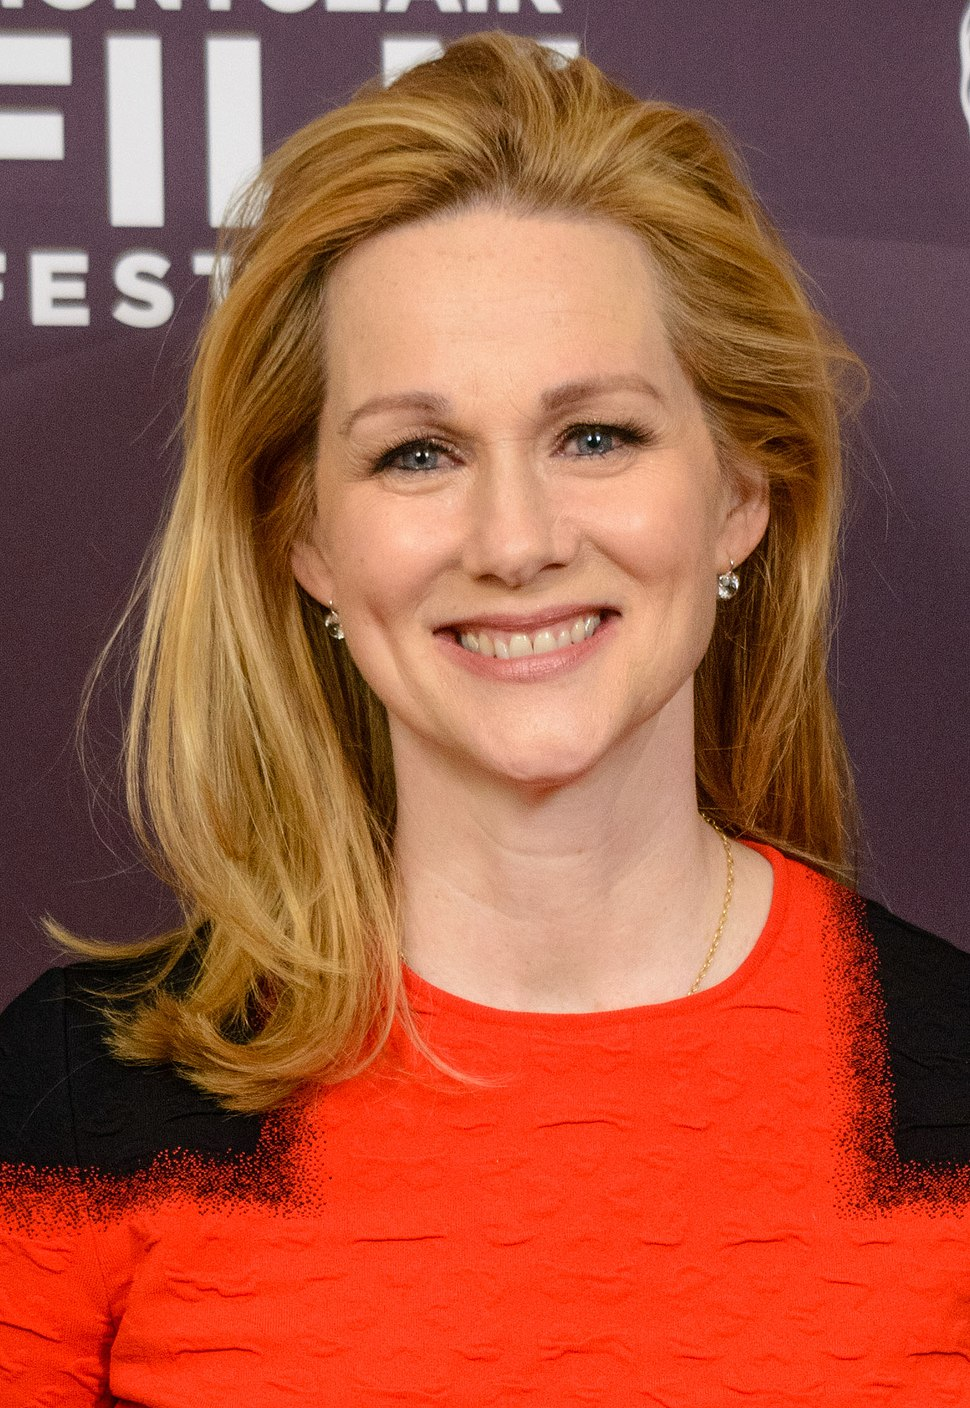 Laura Linney 2016 (cropped)